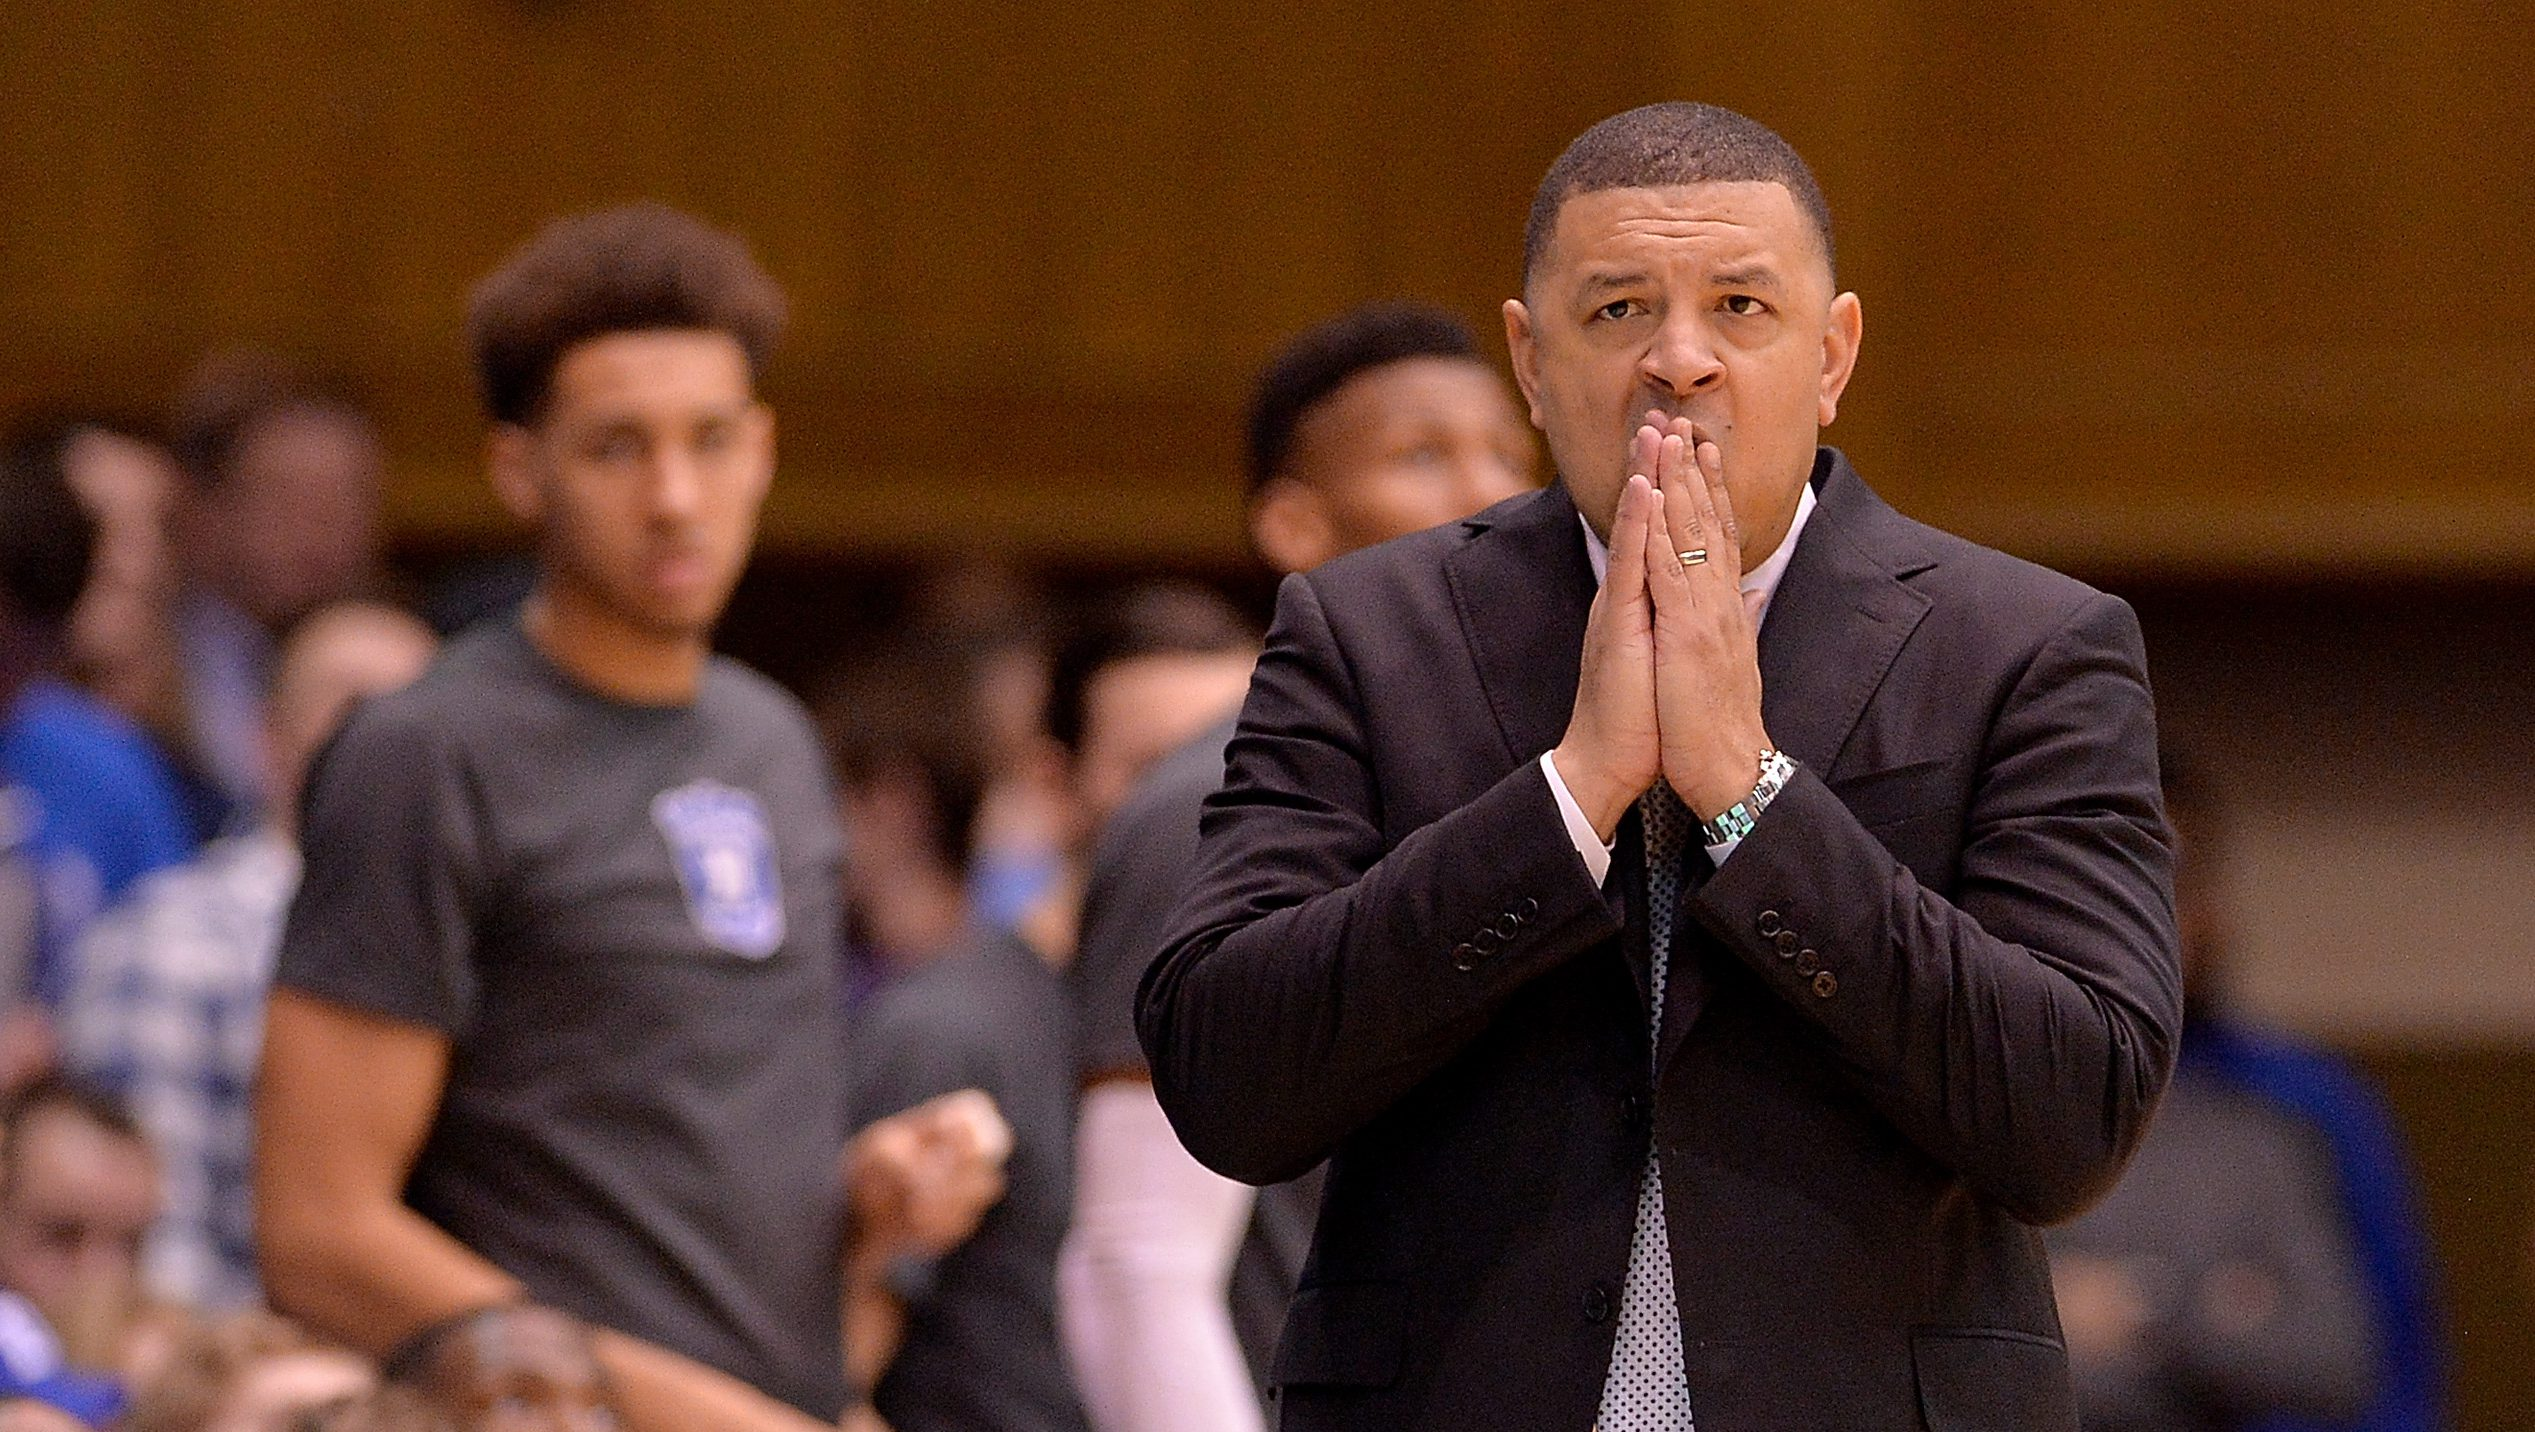 DURHAM, NC - JANUARY 21: Acting head coach Jeff Capel of the Duke Blue Devils watches his team l during the game against the Miami Hurricanes at Cameron Indoor Stadium on January 21, 2017 in Durham, North Carolina. (Photo by Grant Halverson/Getty Images)